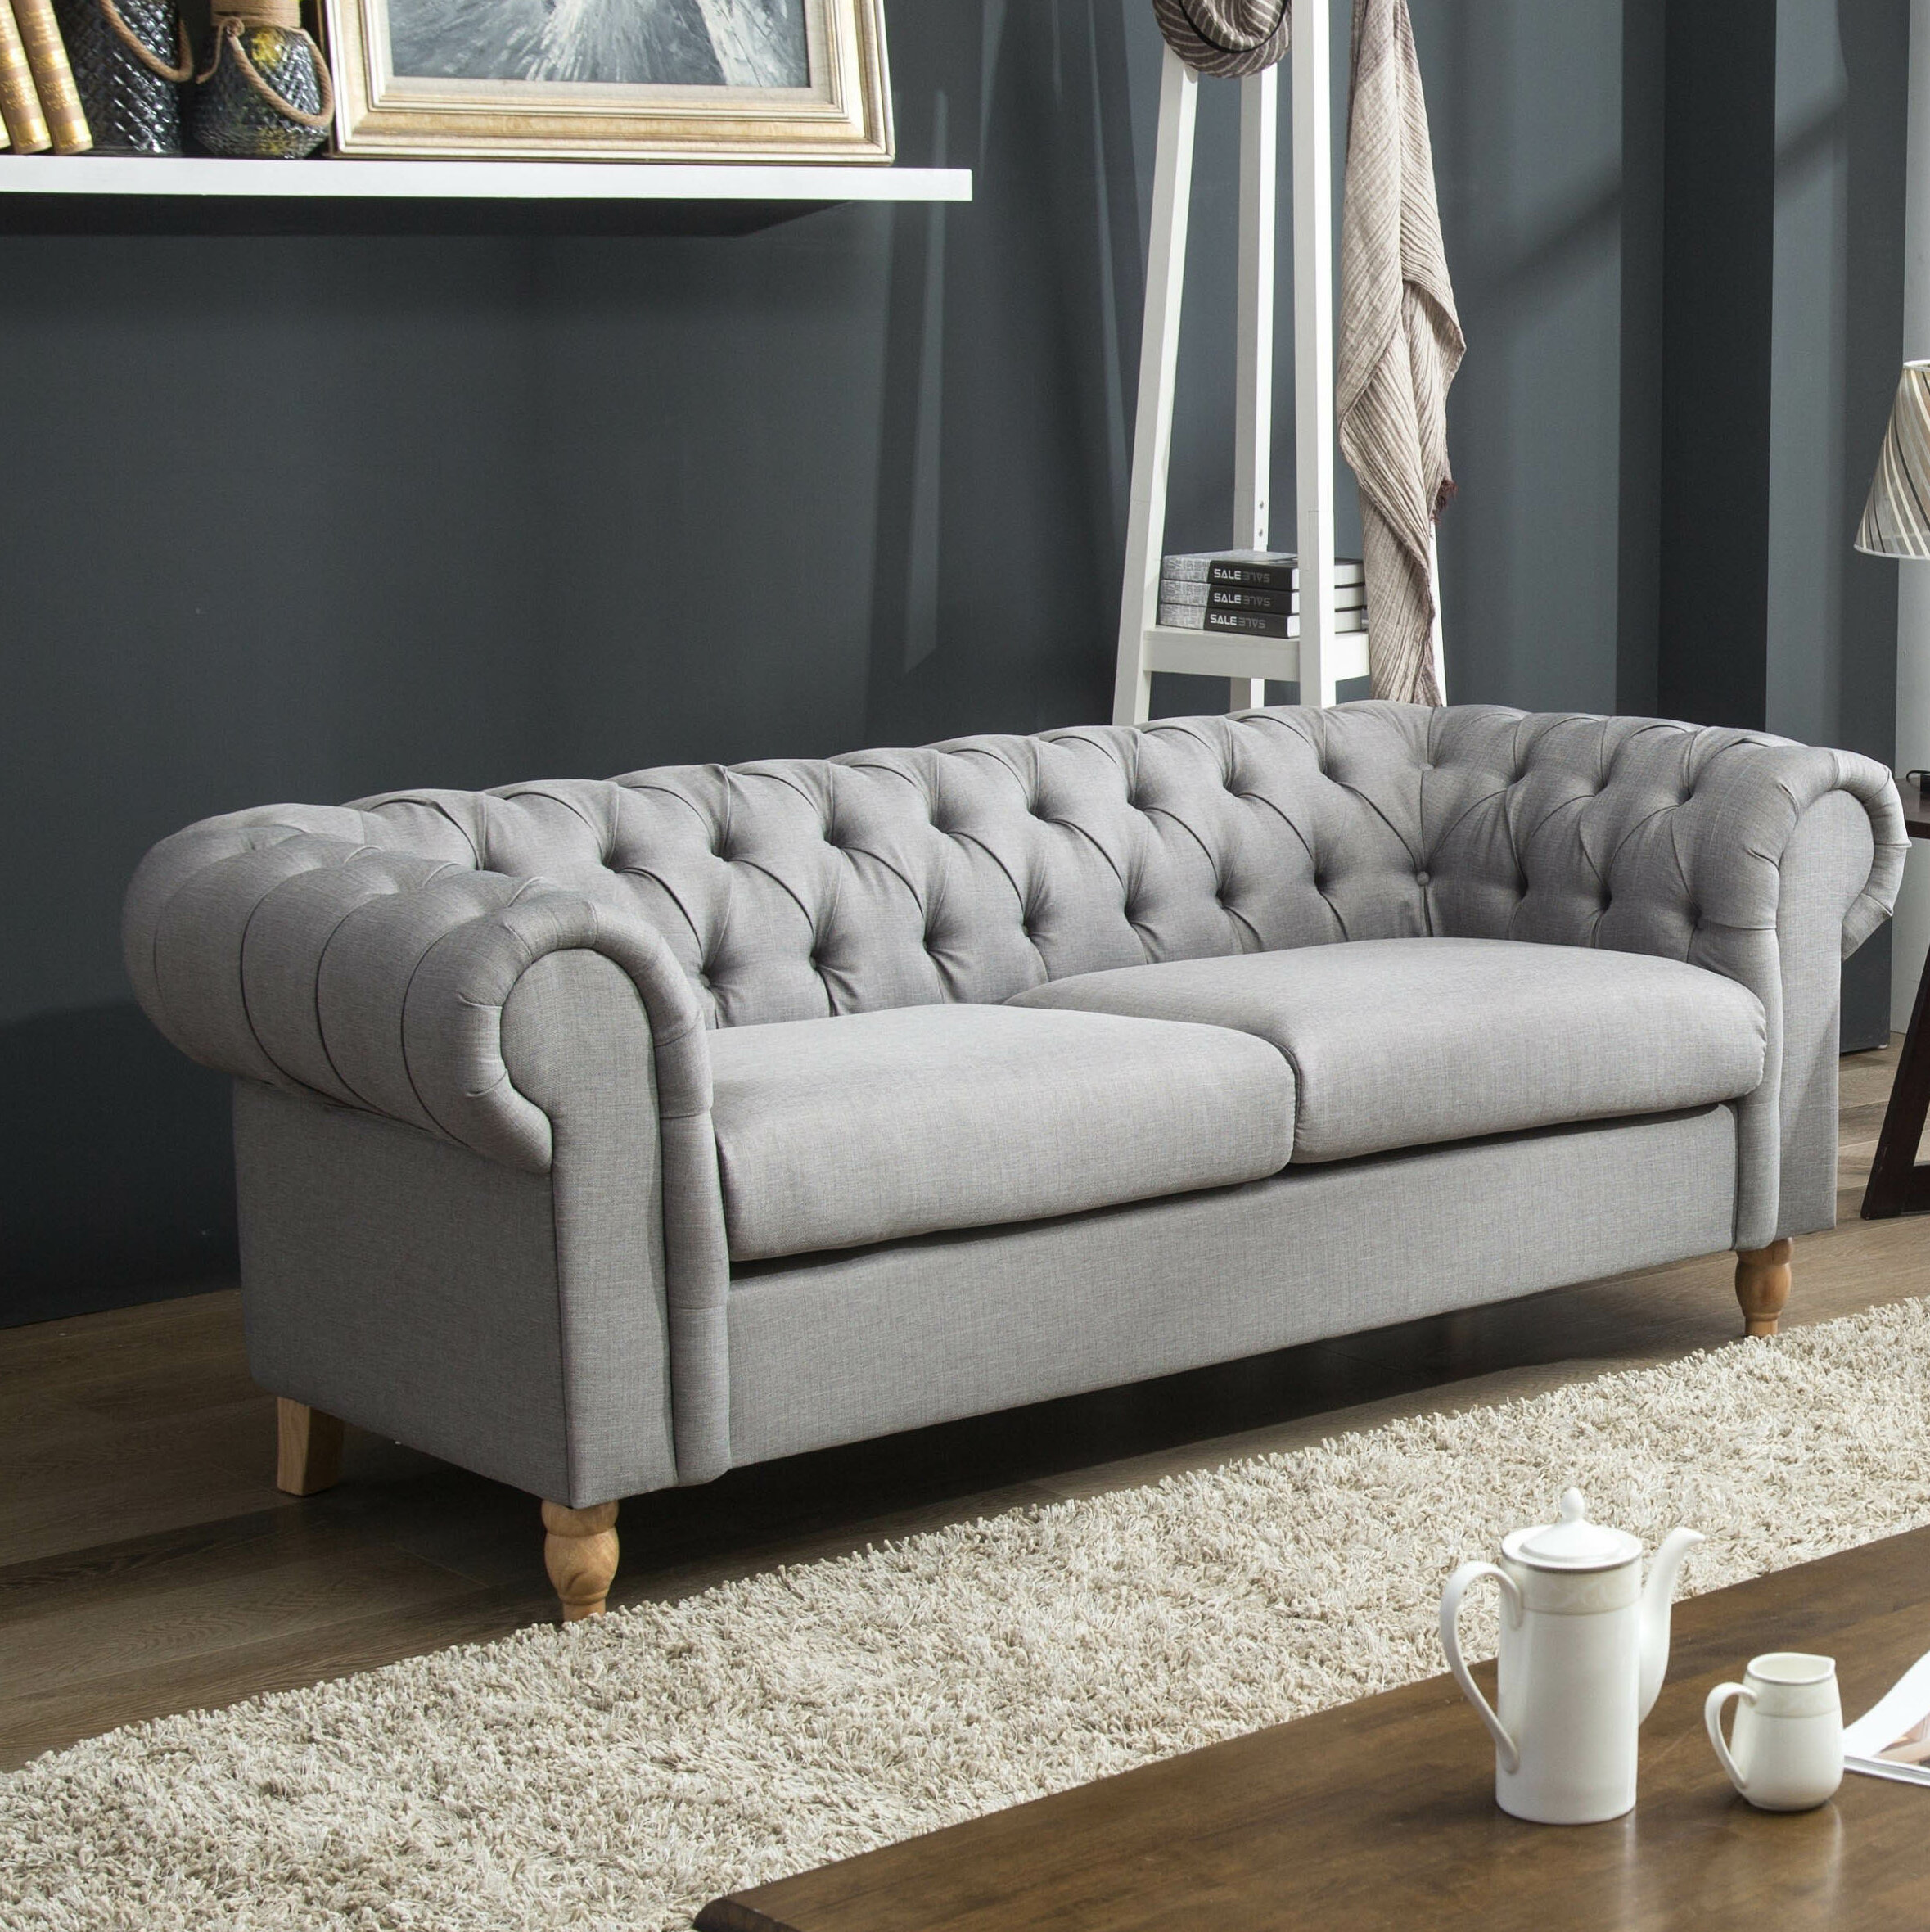 Marlow Home Co. Dunigan 3 Seater Chesterfield Sofa | Wayfair.co.uk